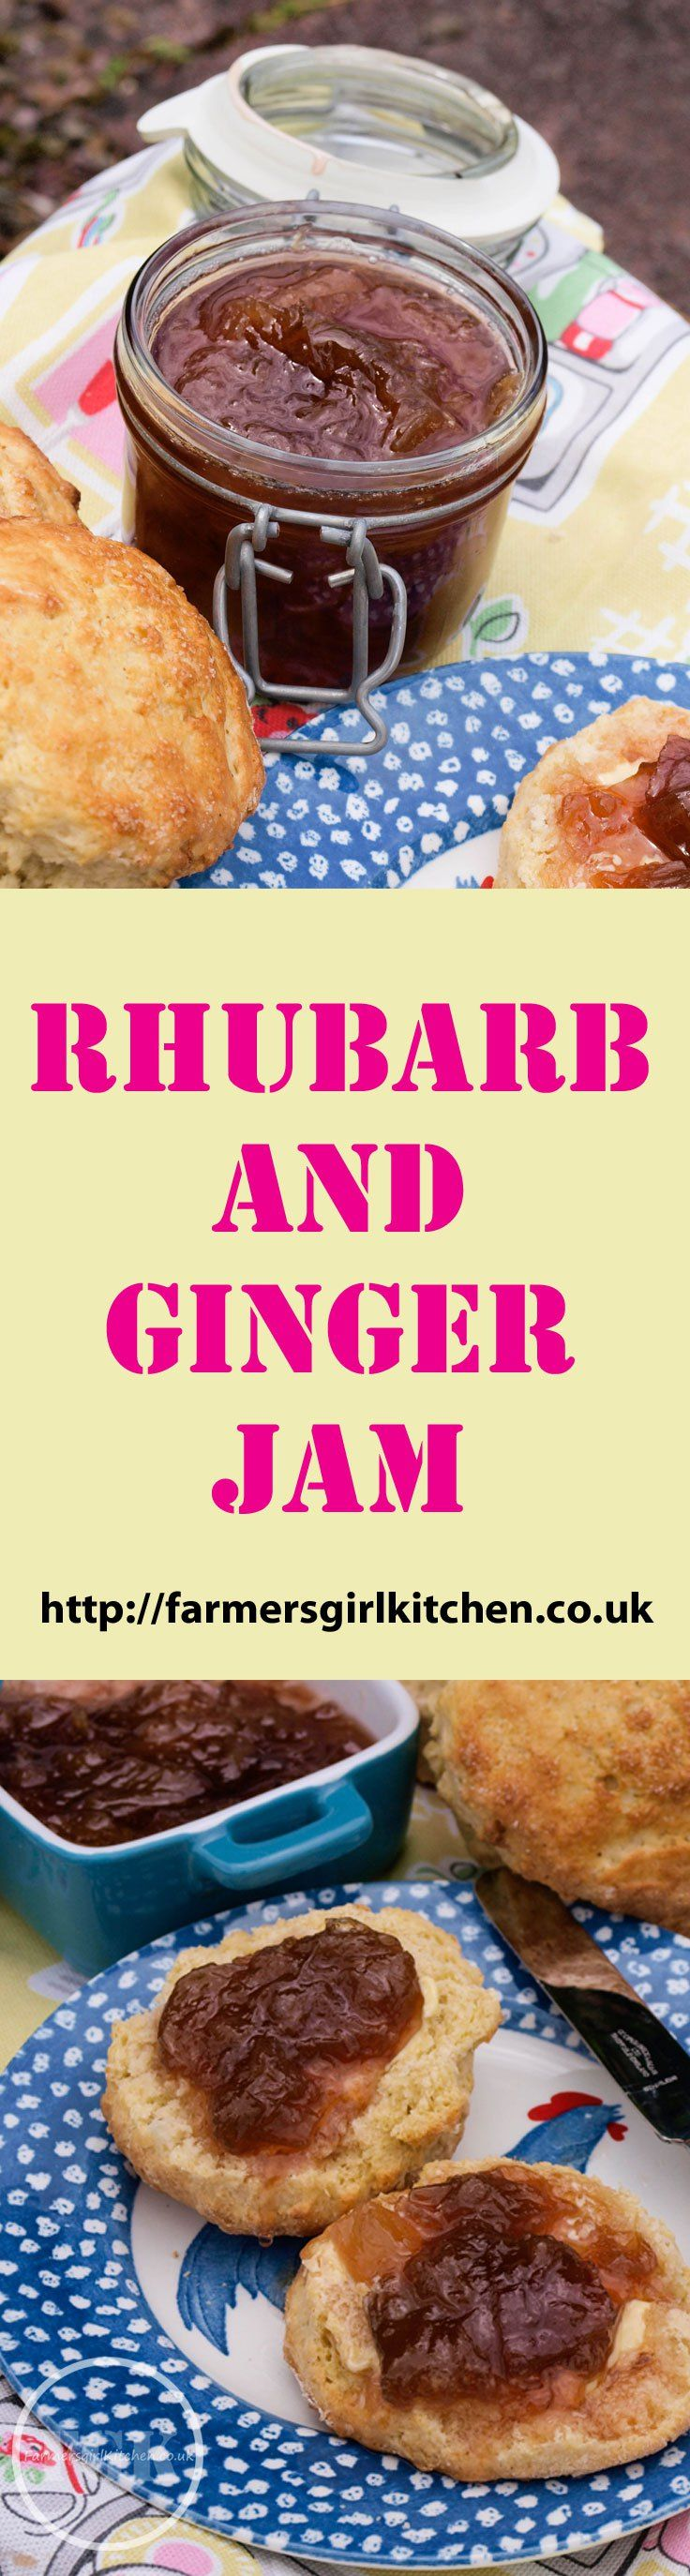 Rhubarb and Ginger Jam Recipe - a classic recipe and one of the most popular at Farmersgirl Kitchen